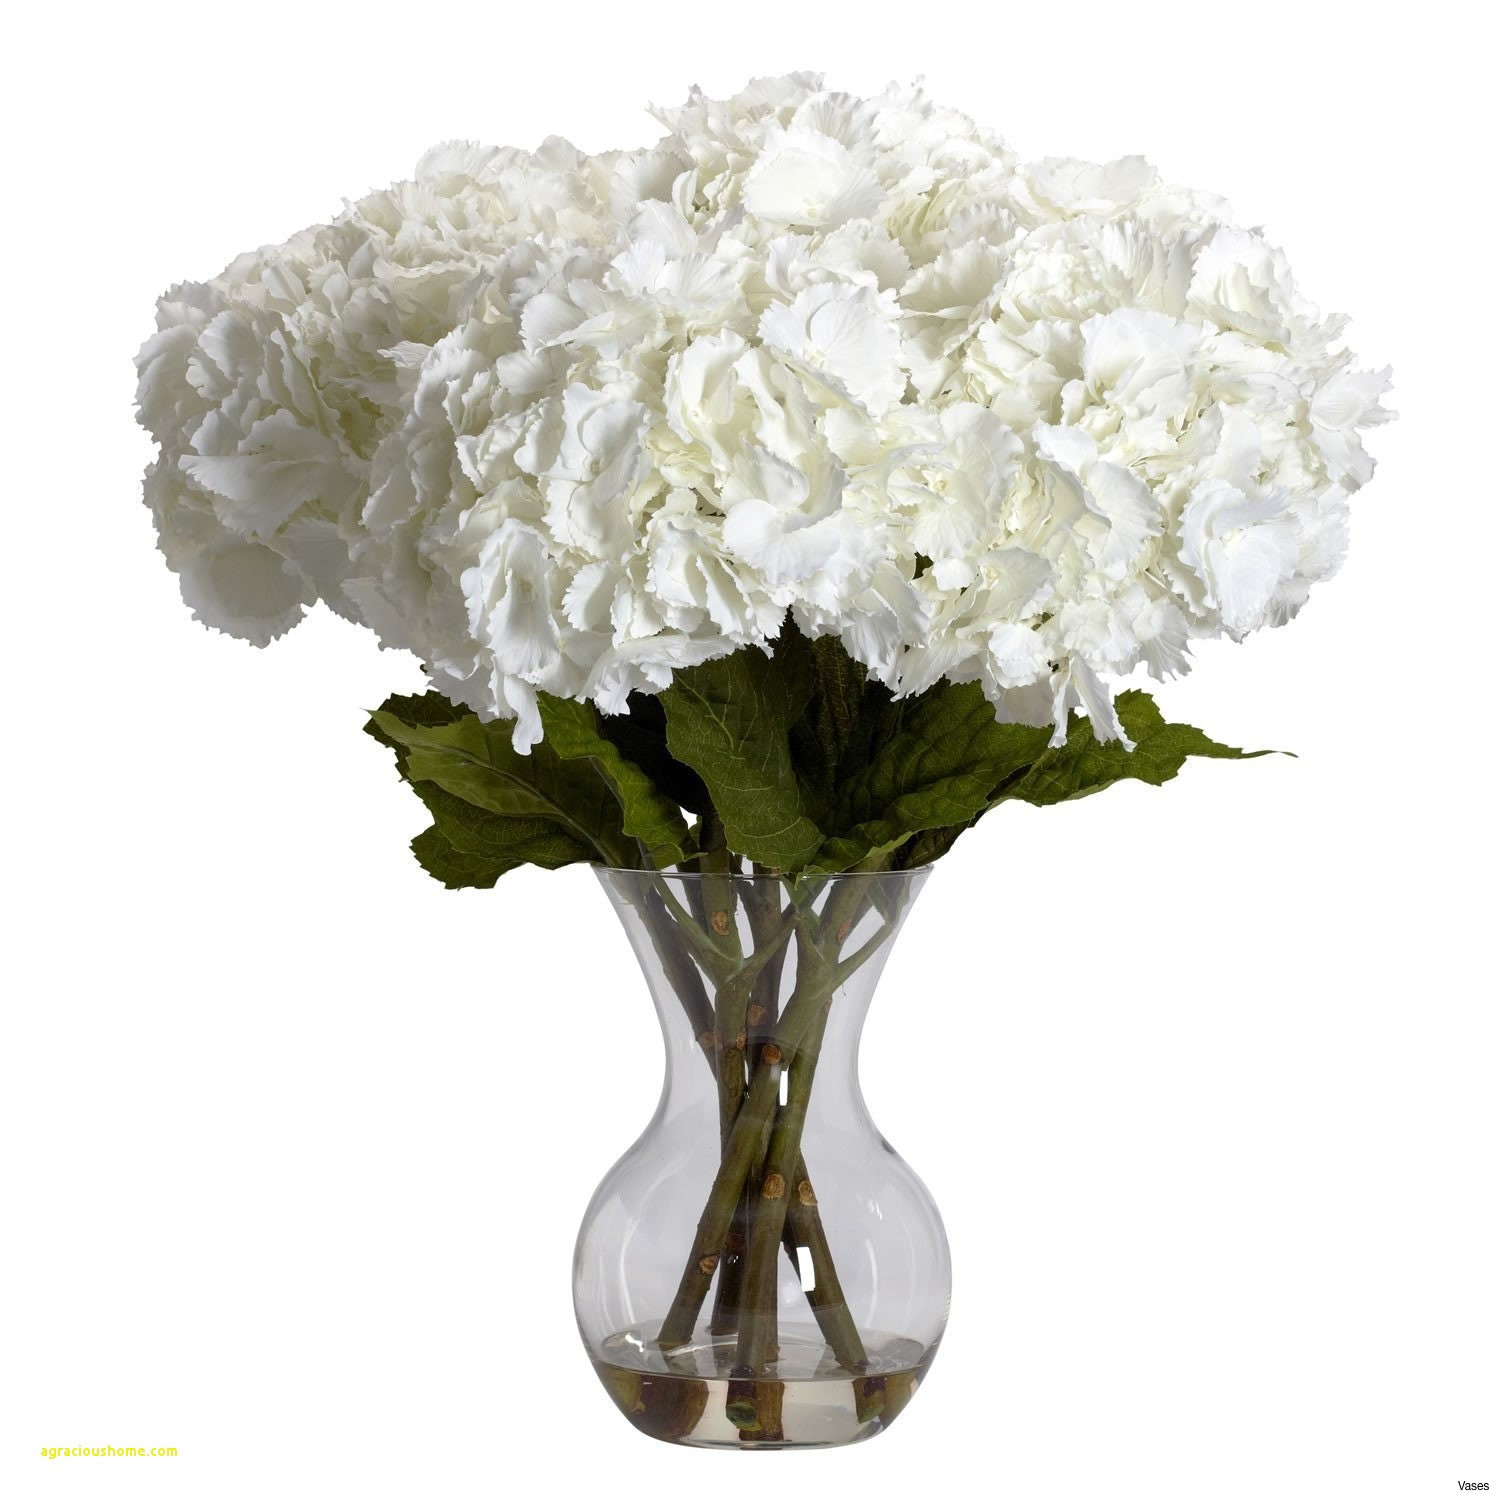 2 Gallon Vase Of Lily Of the Valley Seeds within original Silk Peonys In Glass Vaseh Vases Flowers A Vase Vasei 0d Design Of Silk Hydrangea